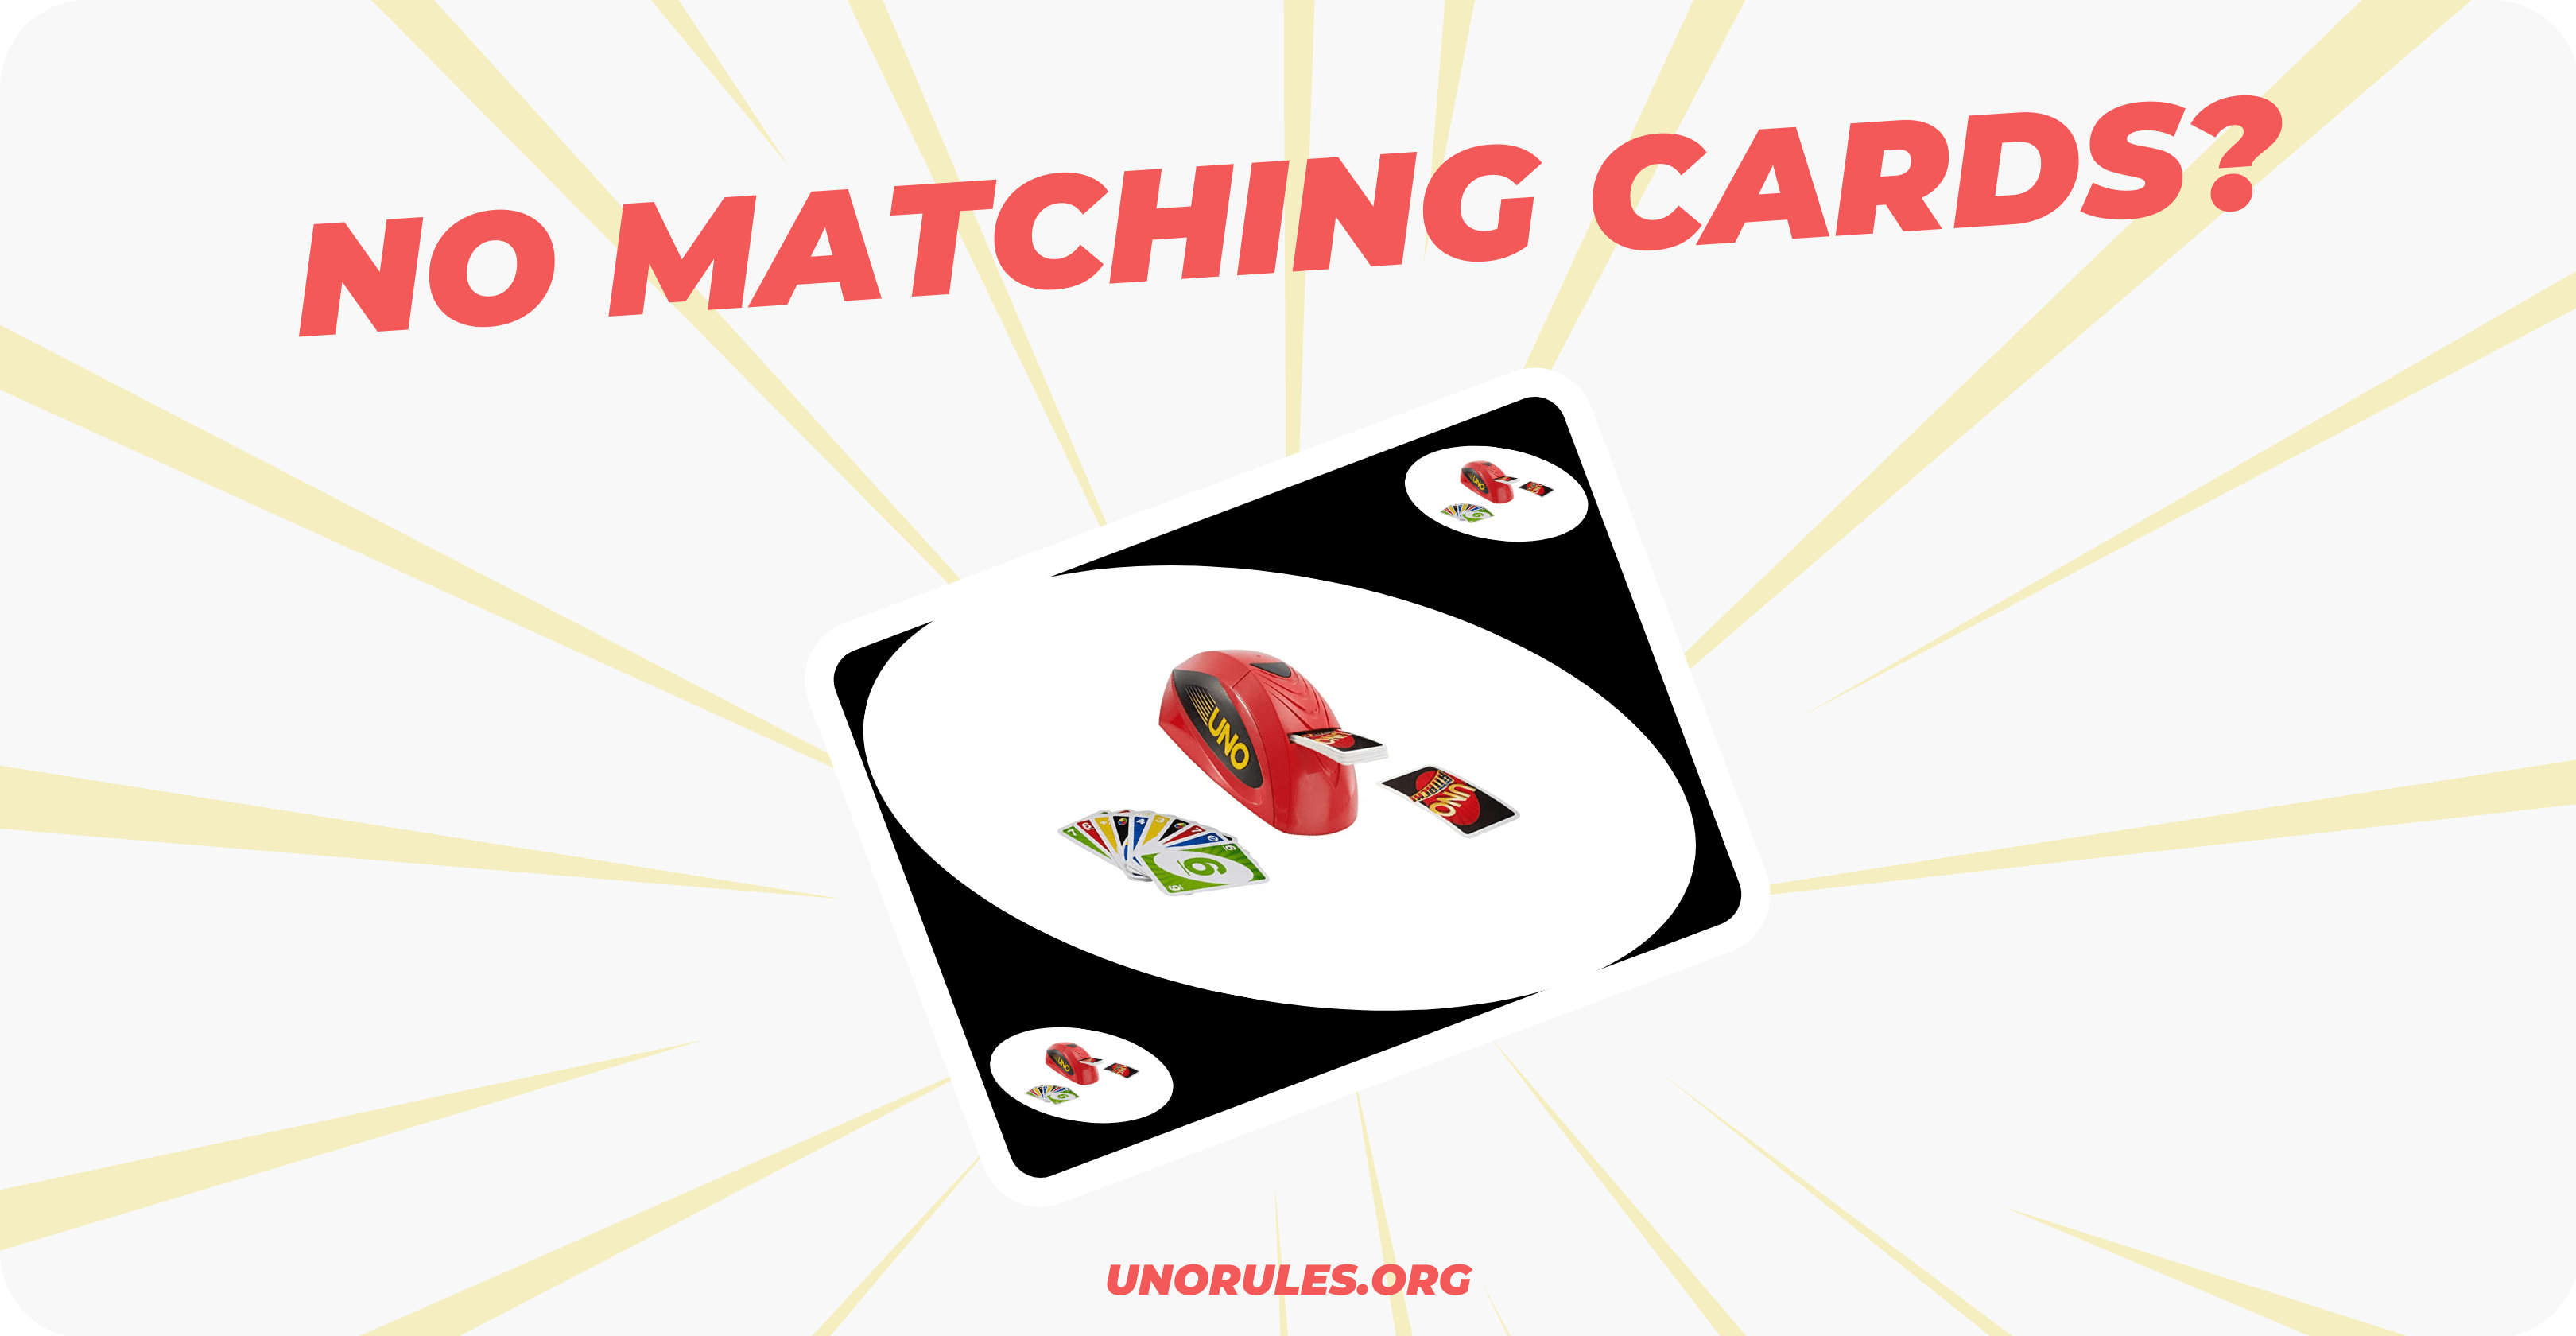 No matching cards